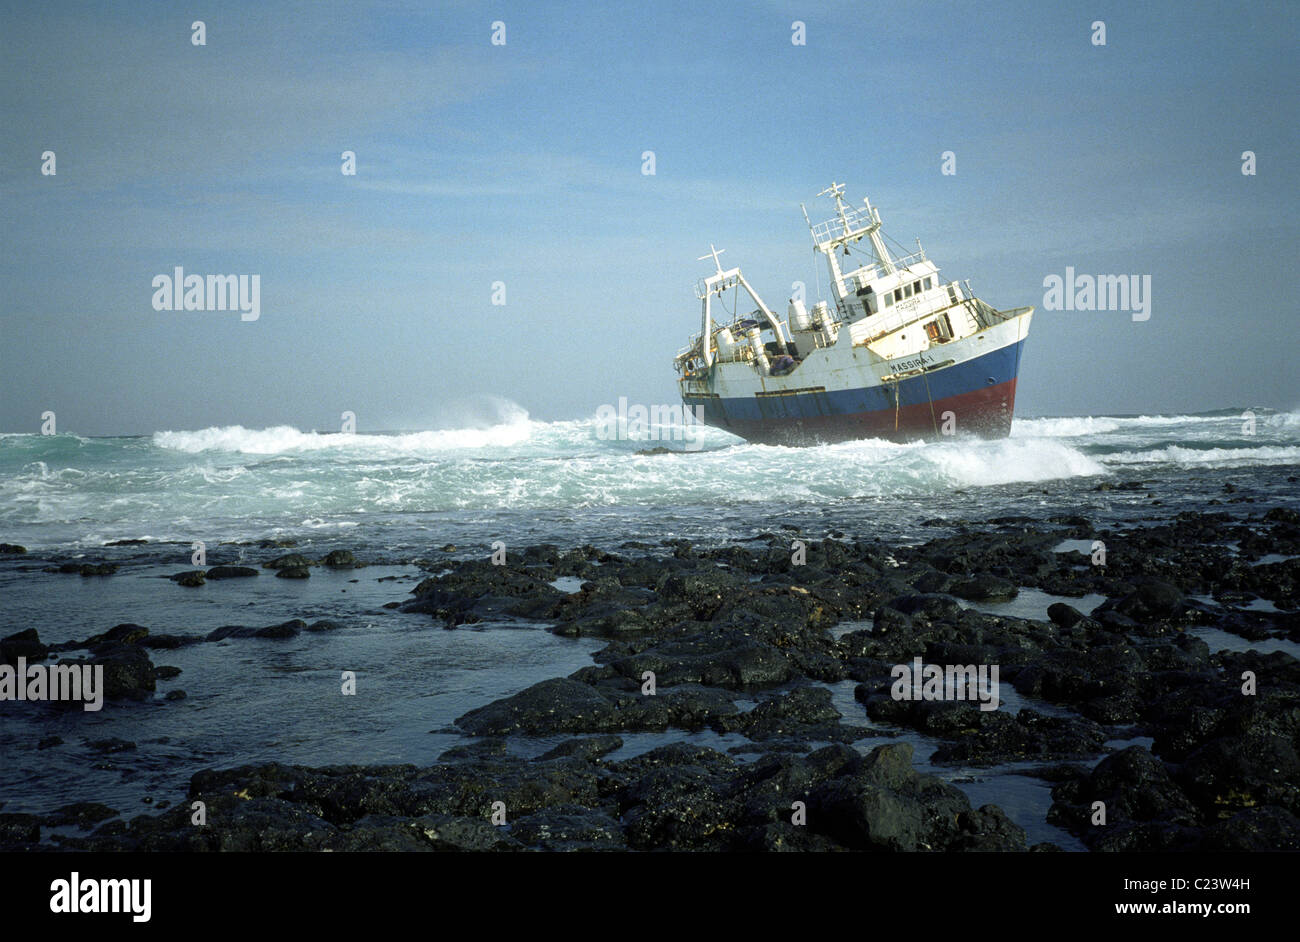 Shipwreck off the coast of Kenya Africa - Stock Image